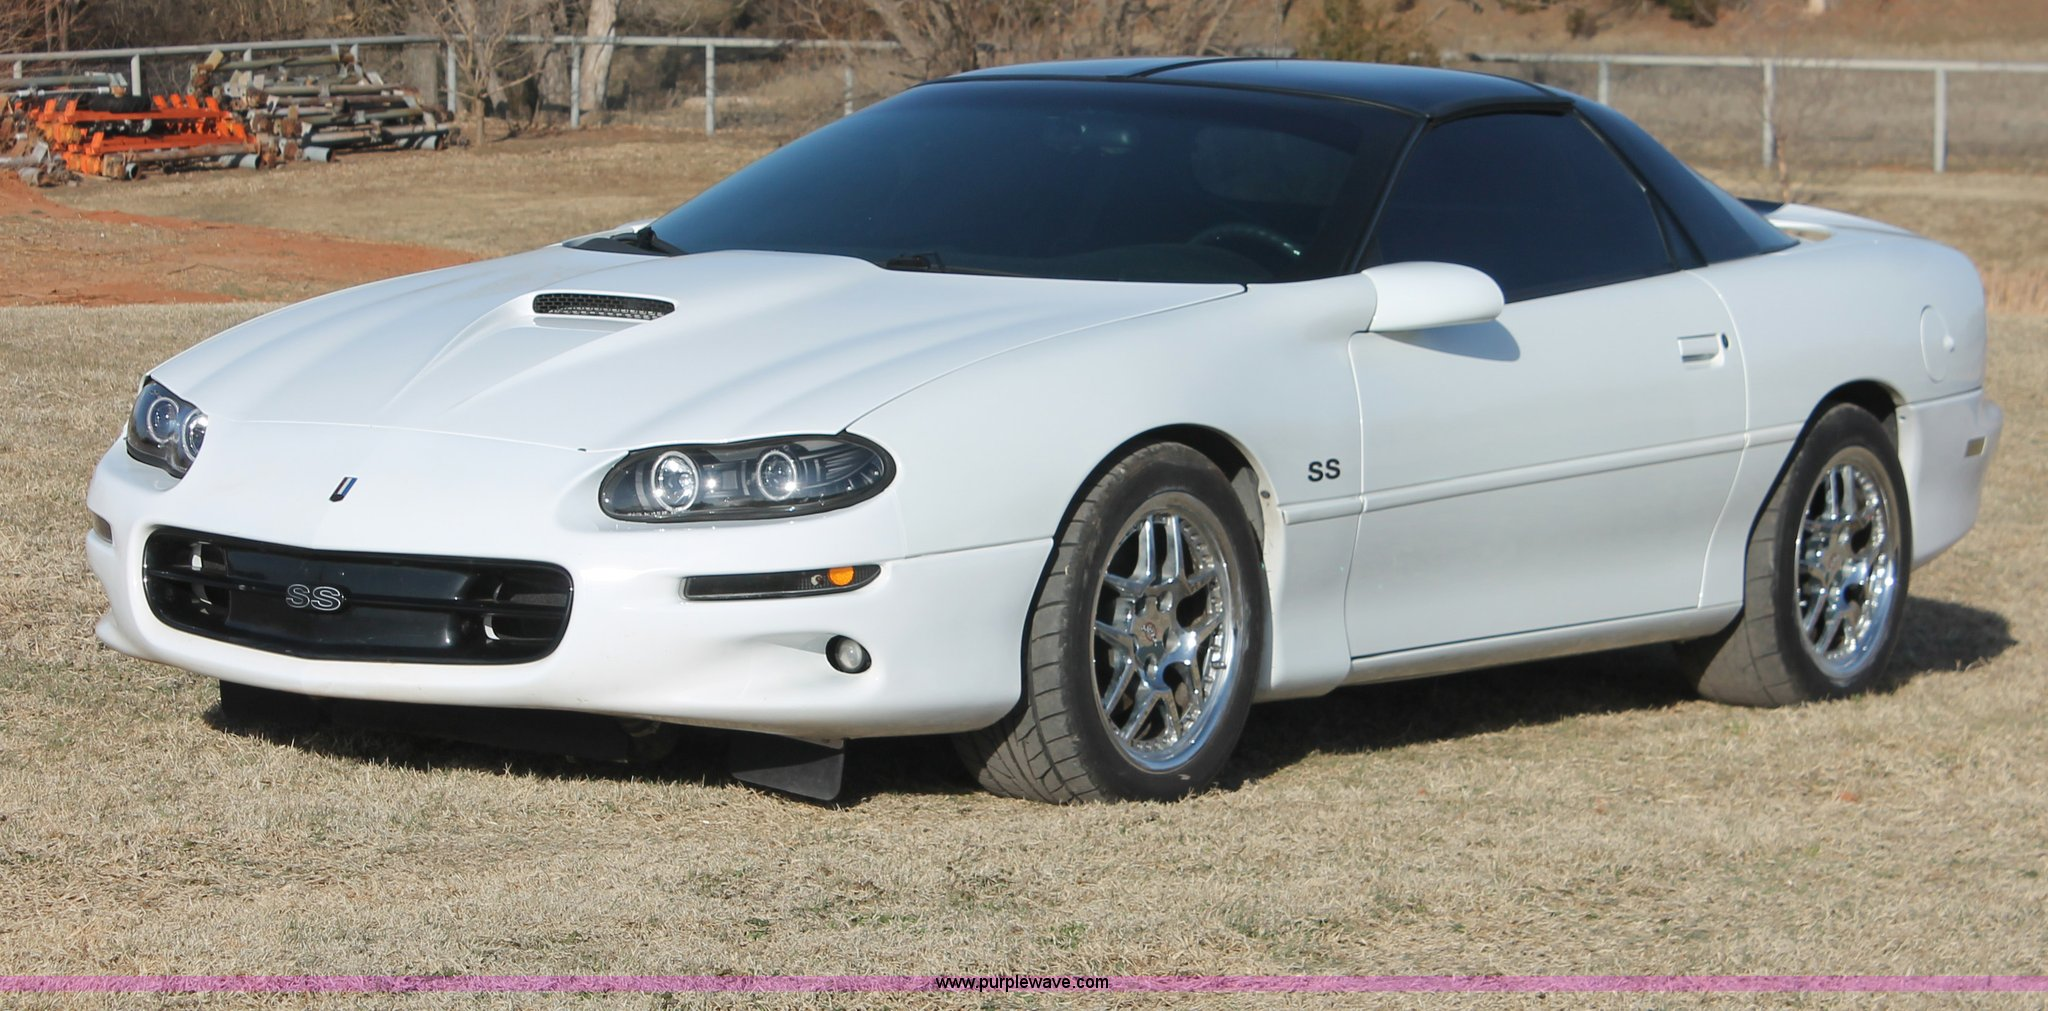 2002 chevrolet camaro z28 ss | item ao9479 | sold! april 16